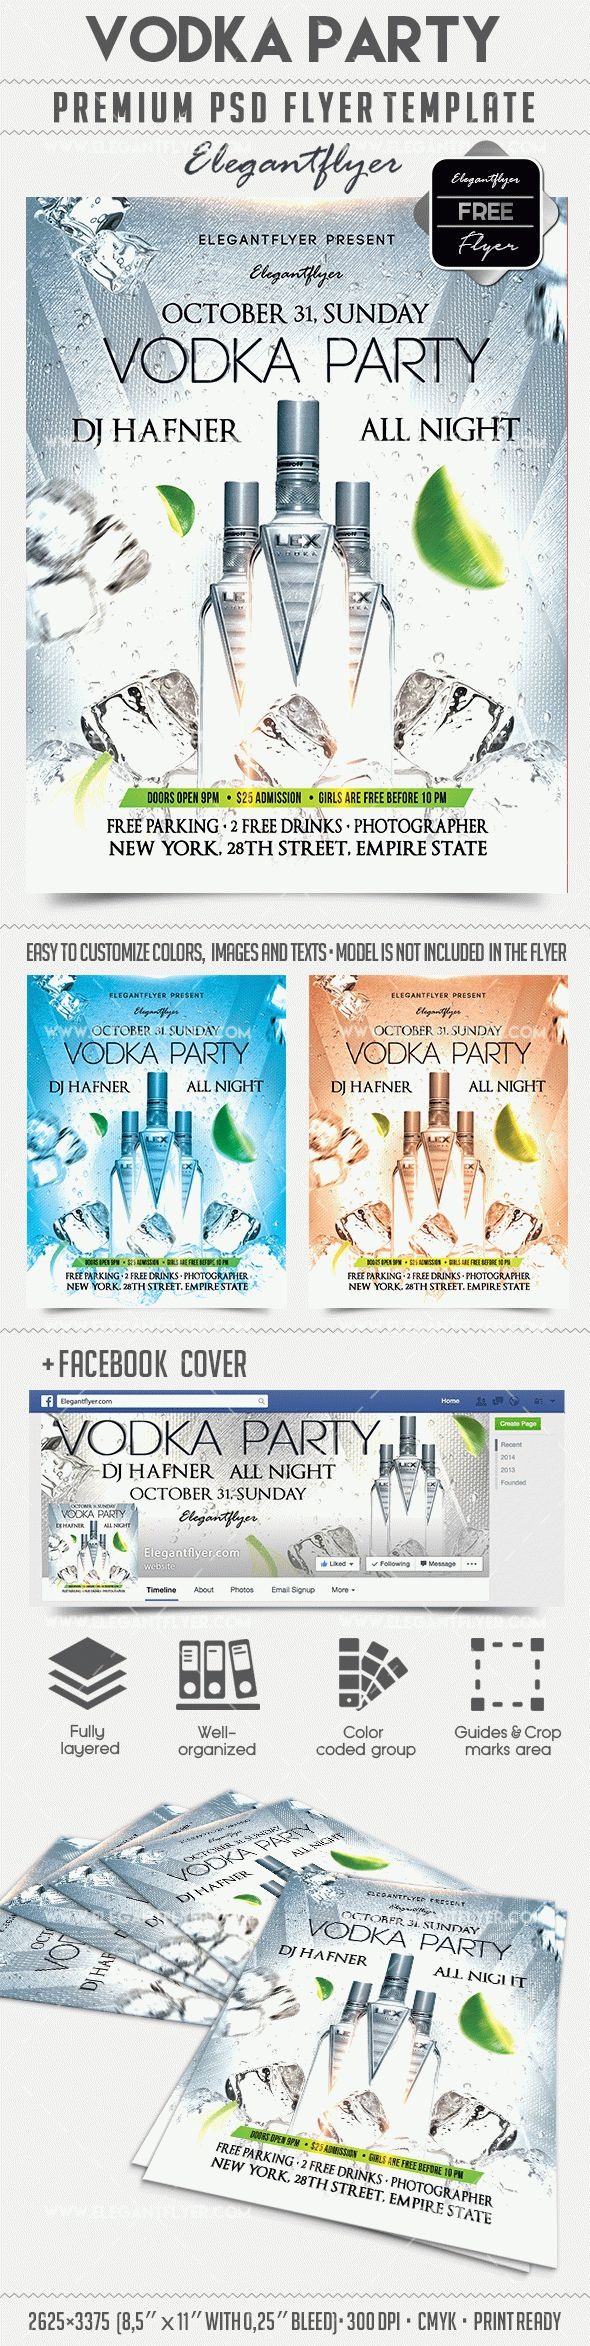 Vodka party – Free Flyer PSD Template + Facebook Cover